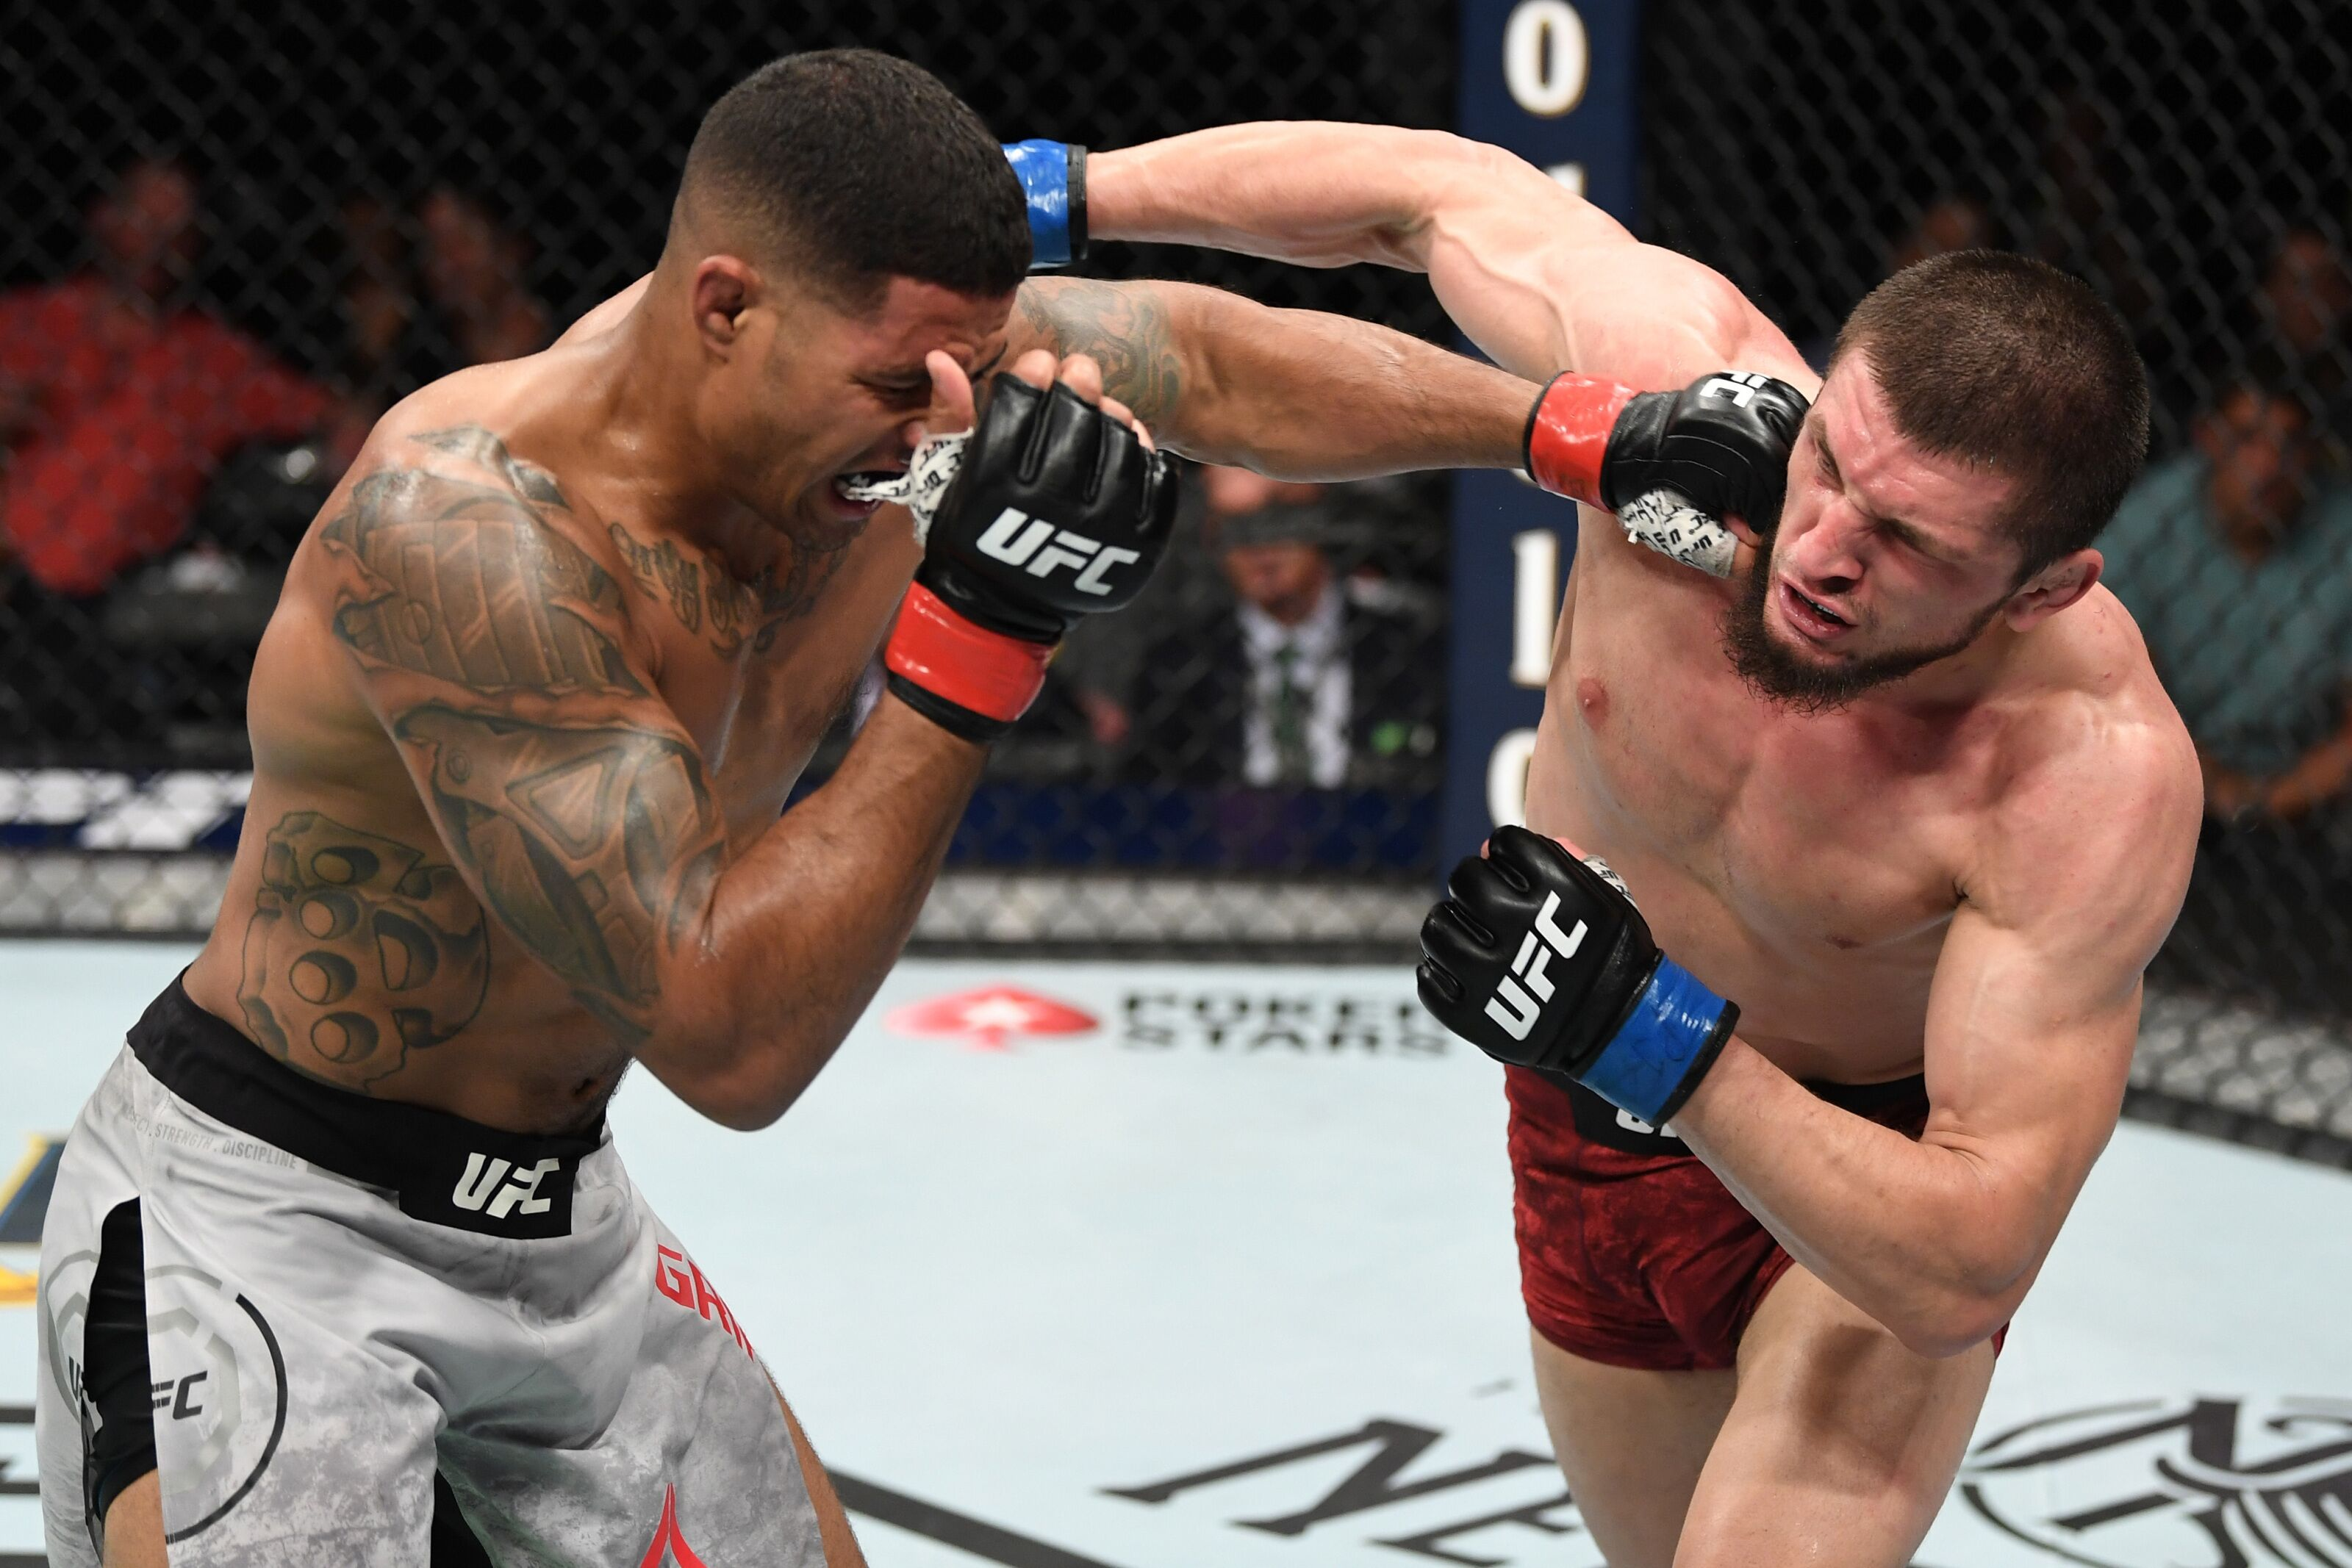 ATLANTA, GA - APRIL 13: (L-R) Max Griffin punches Zelim Imadaev of Russia in their welterweight bout during the UFC 236 event at State Farm Arena on April 13, 2019 in Atlanta, Georgia. (Photo by Josh Hedges/Zuffa LLC/Zuffa LLC via Getty Images)